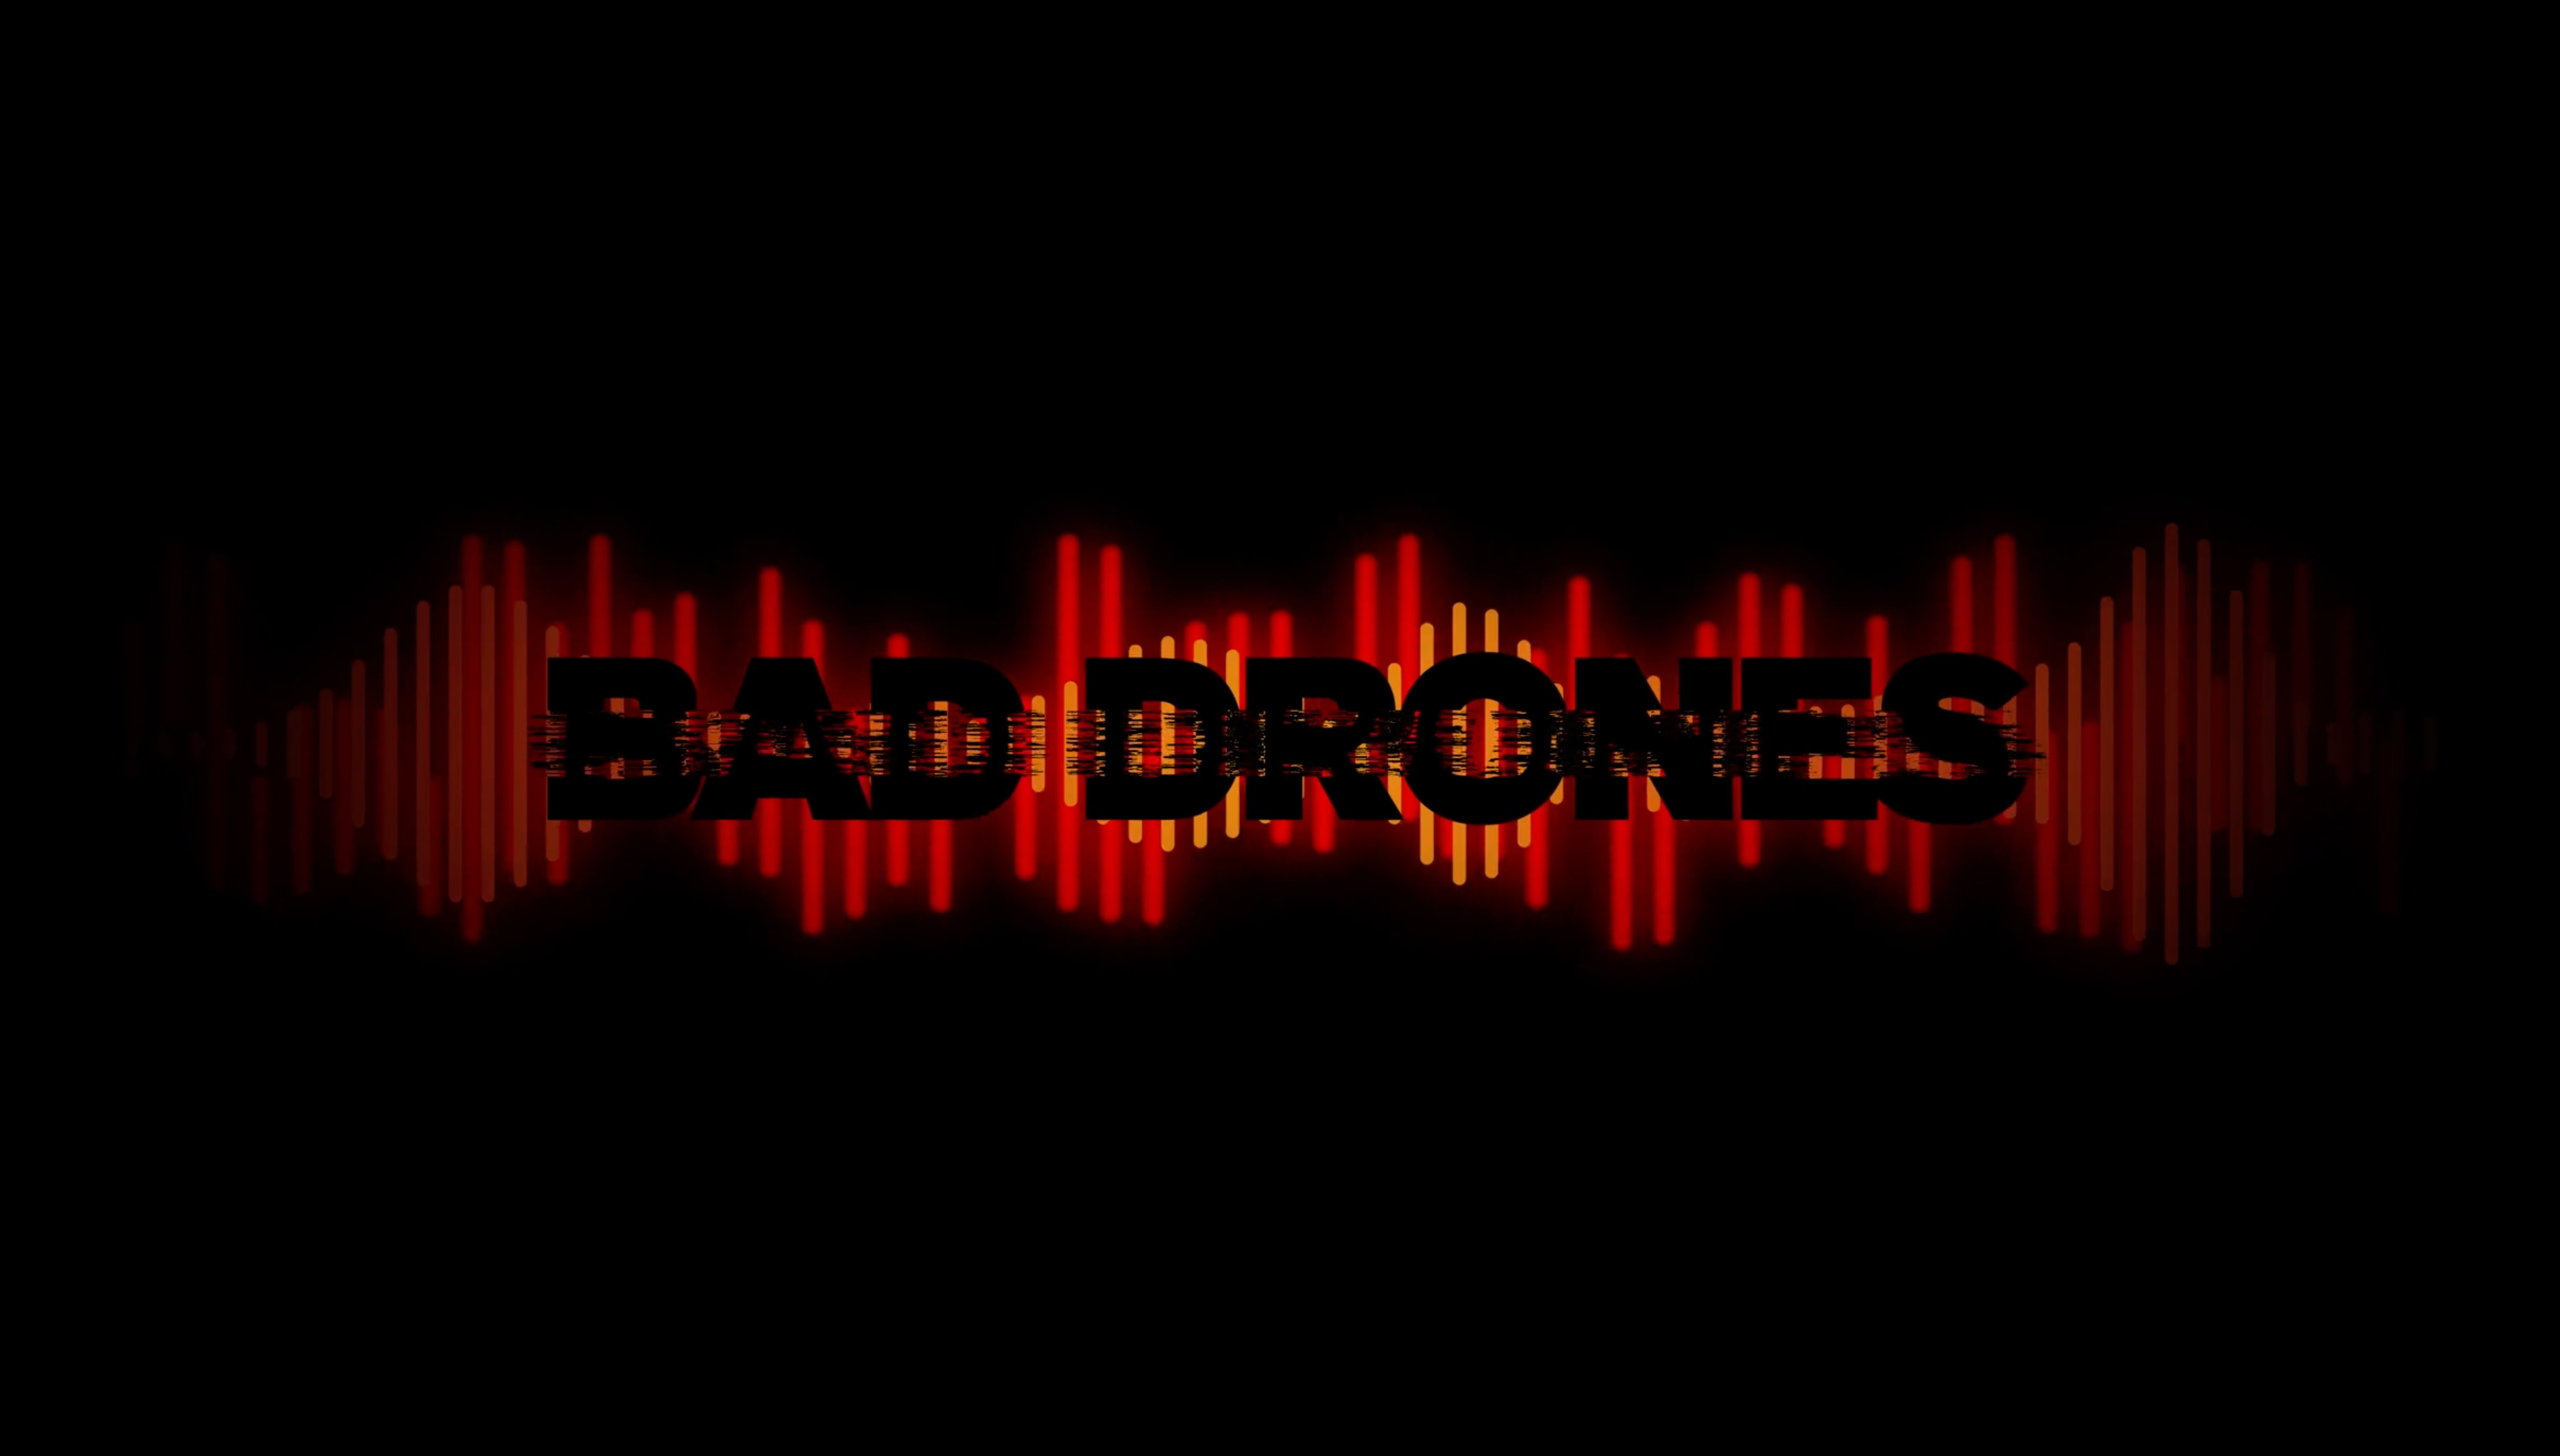 Bad Drones Film Title Design by Zookeeper